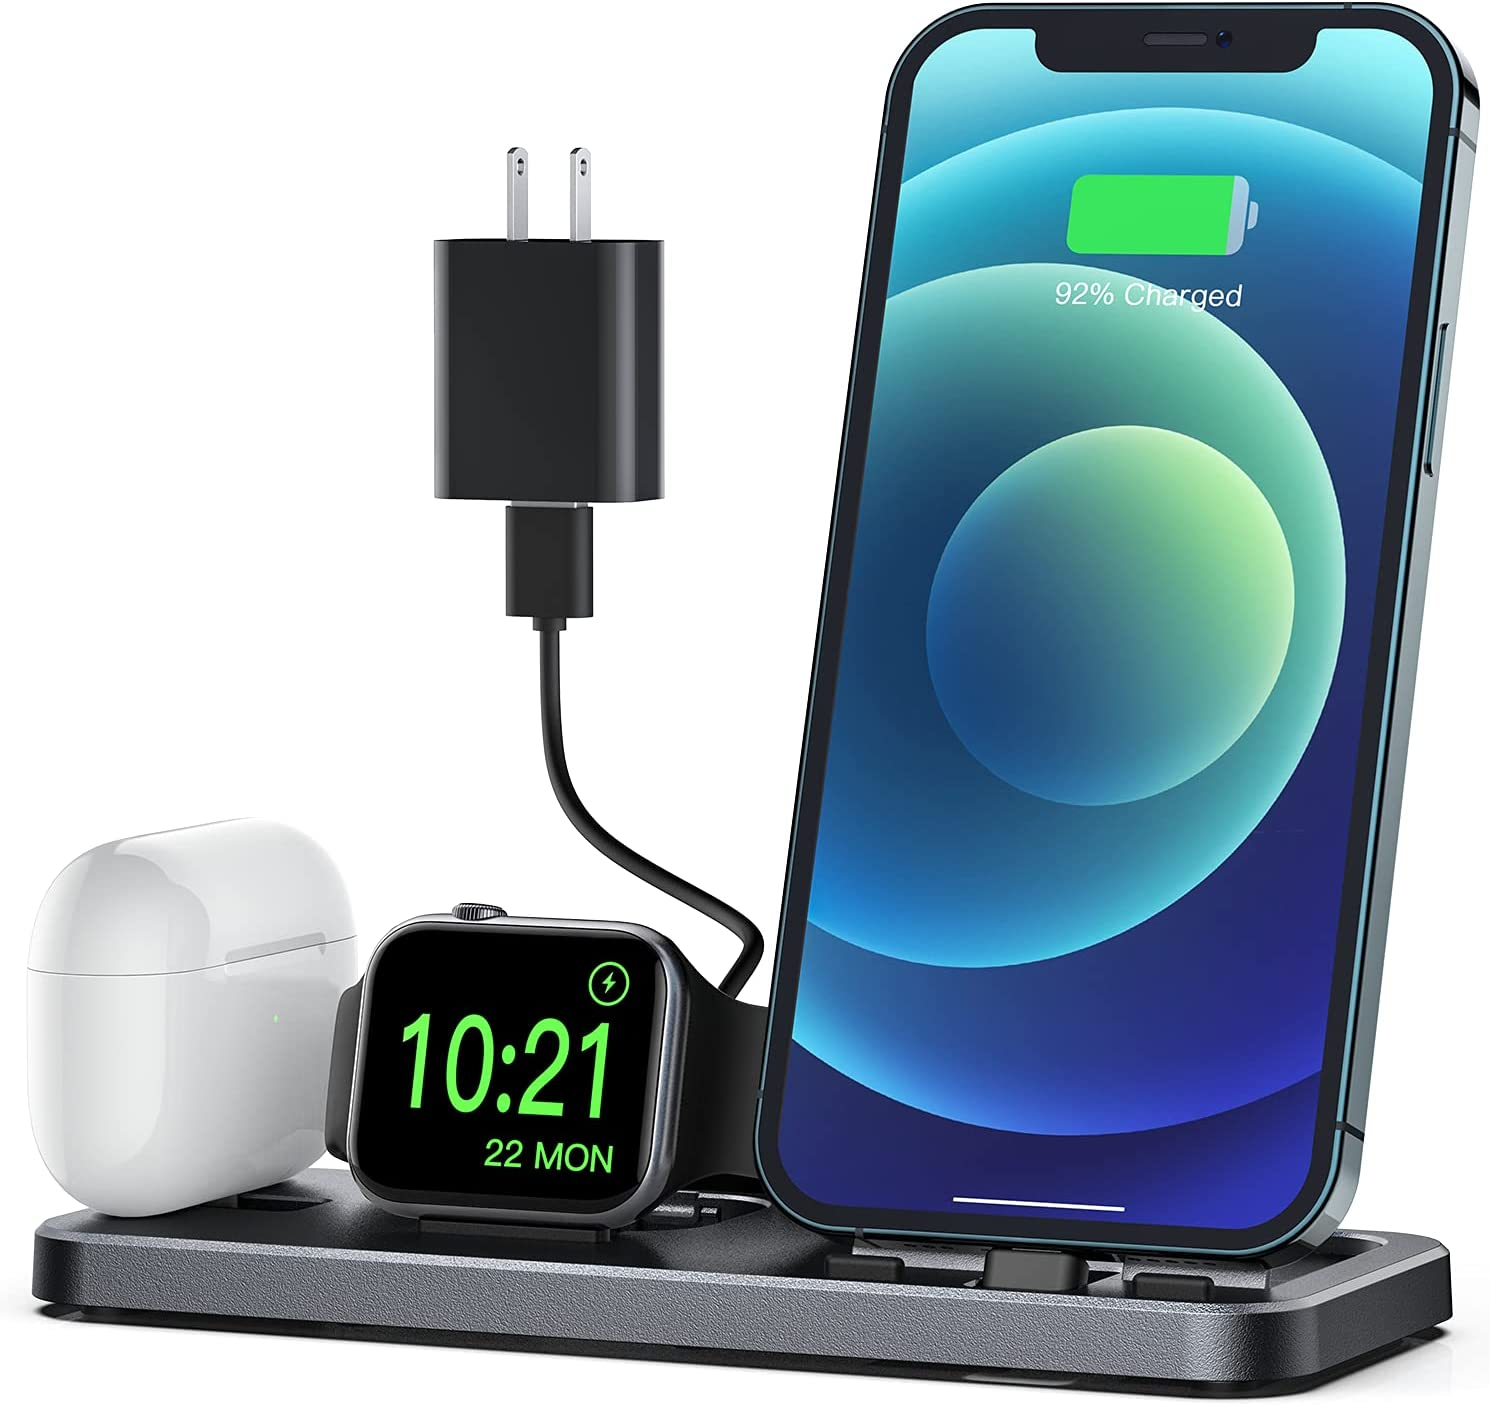 CEREECOO Portable 3 in 1 Charging Station for Apple Product Foldable Charger Stand for iWatch 6/SE/5/4/3/2/1 Charging Stand for iPhone AirPods Pro/2/1 Charging Dock Holder(with 10W Adapter) Space Gray